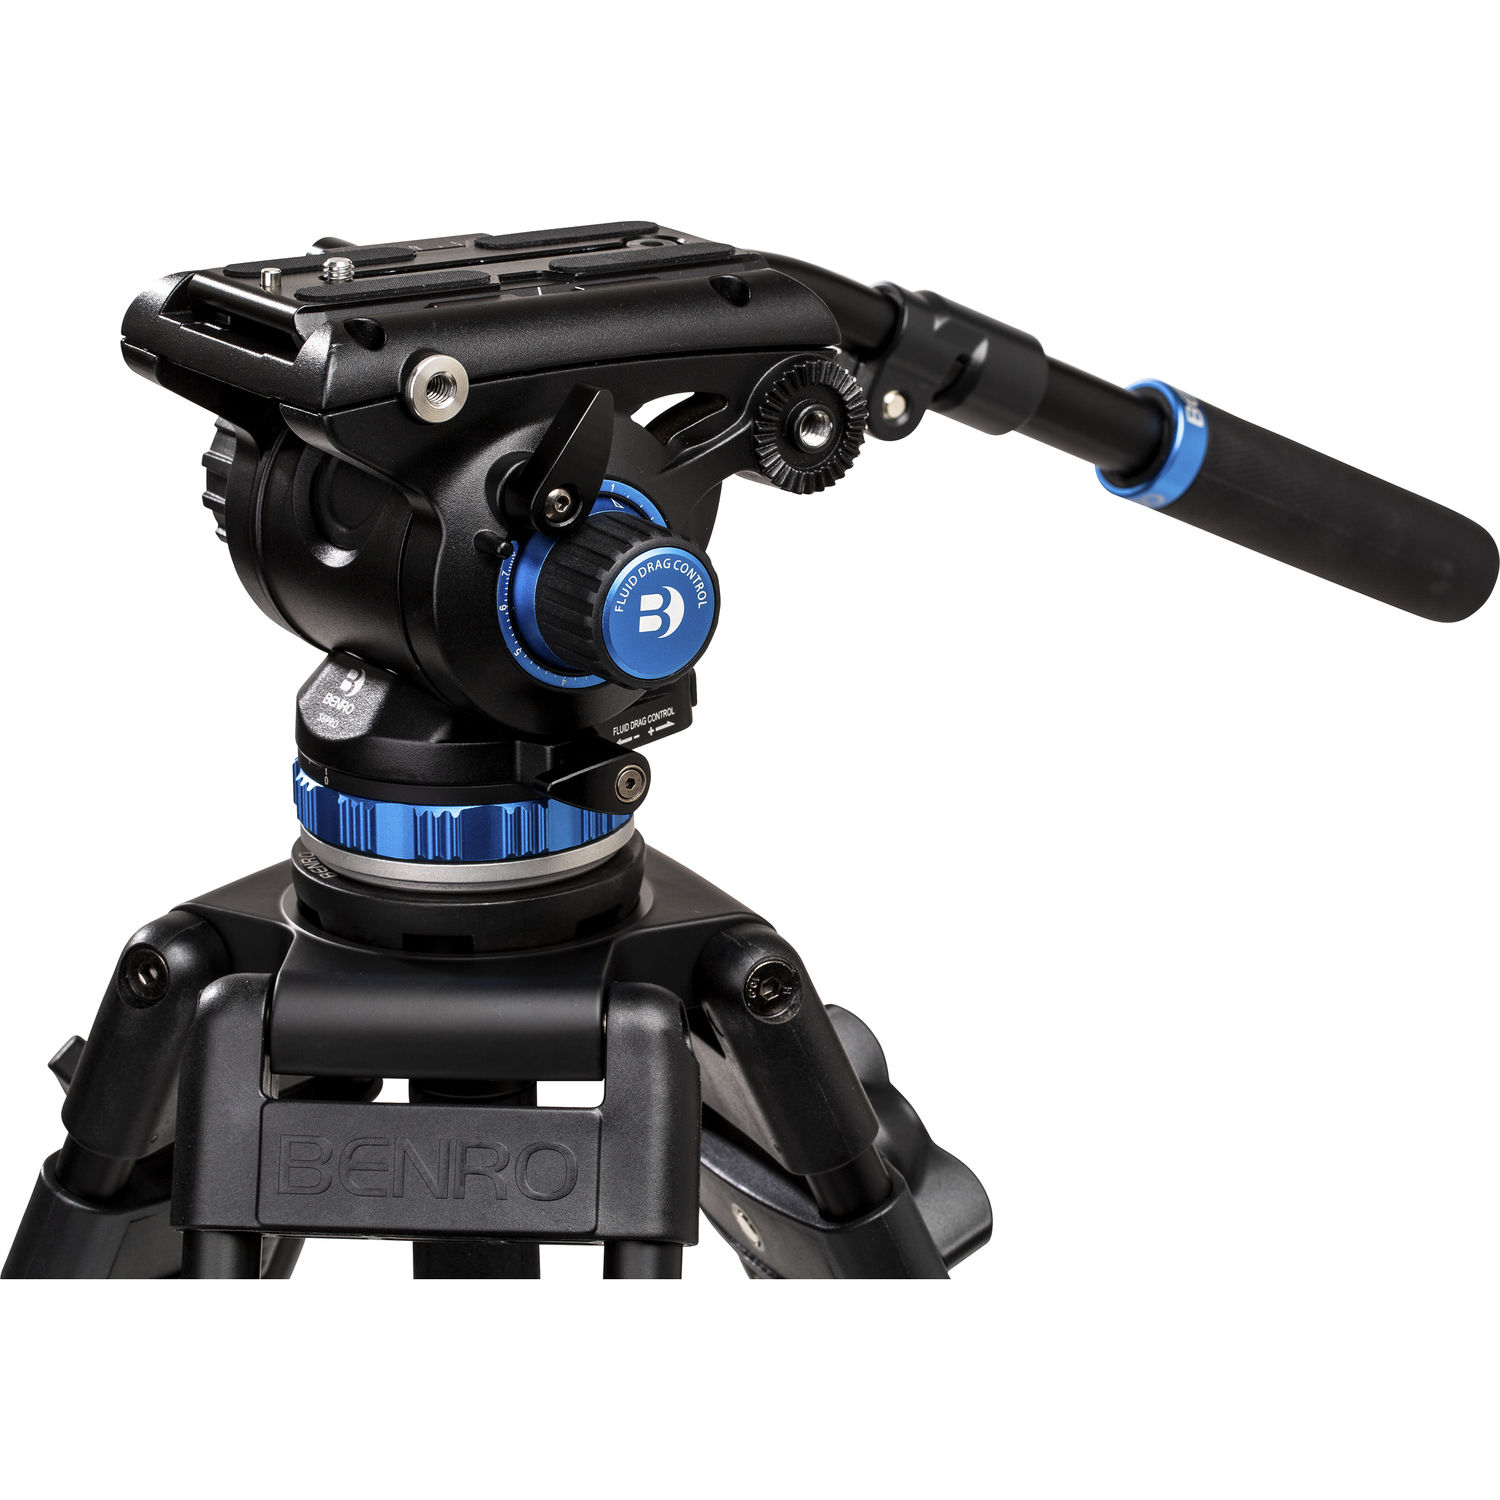 Benro S6 Pro Fluid Video Head